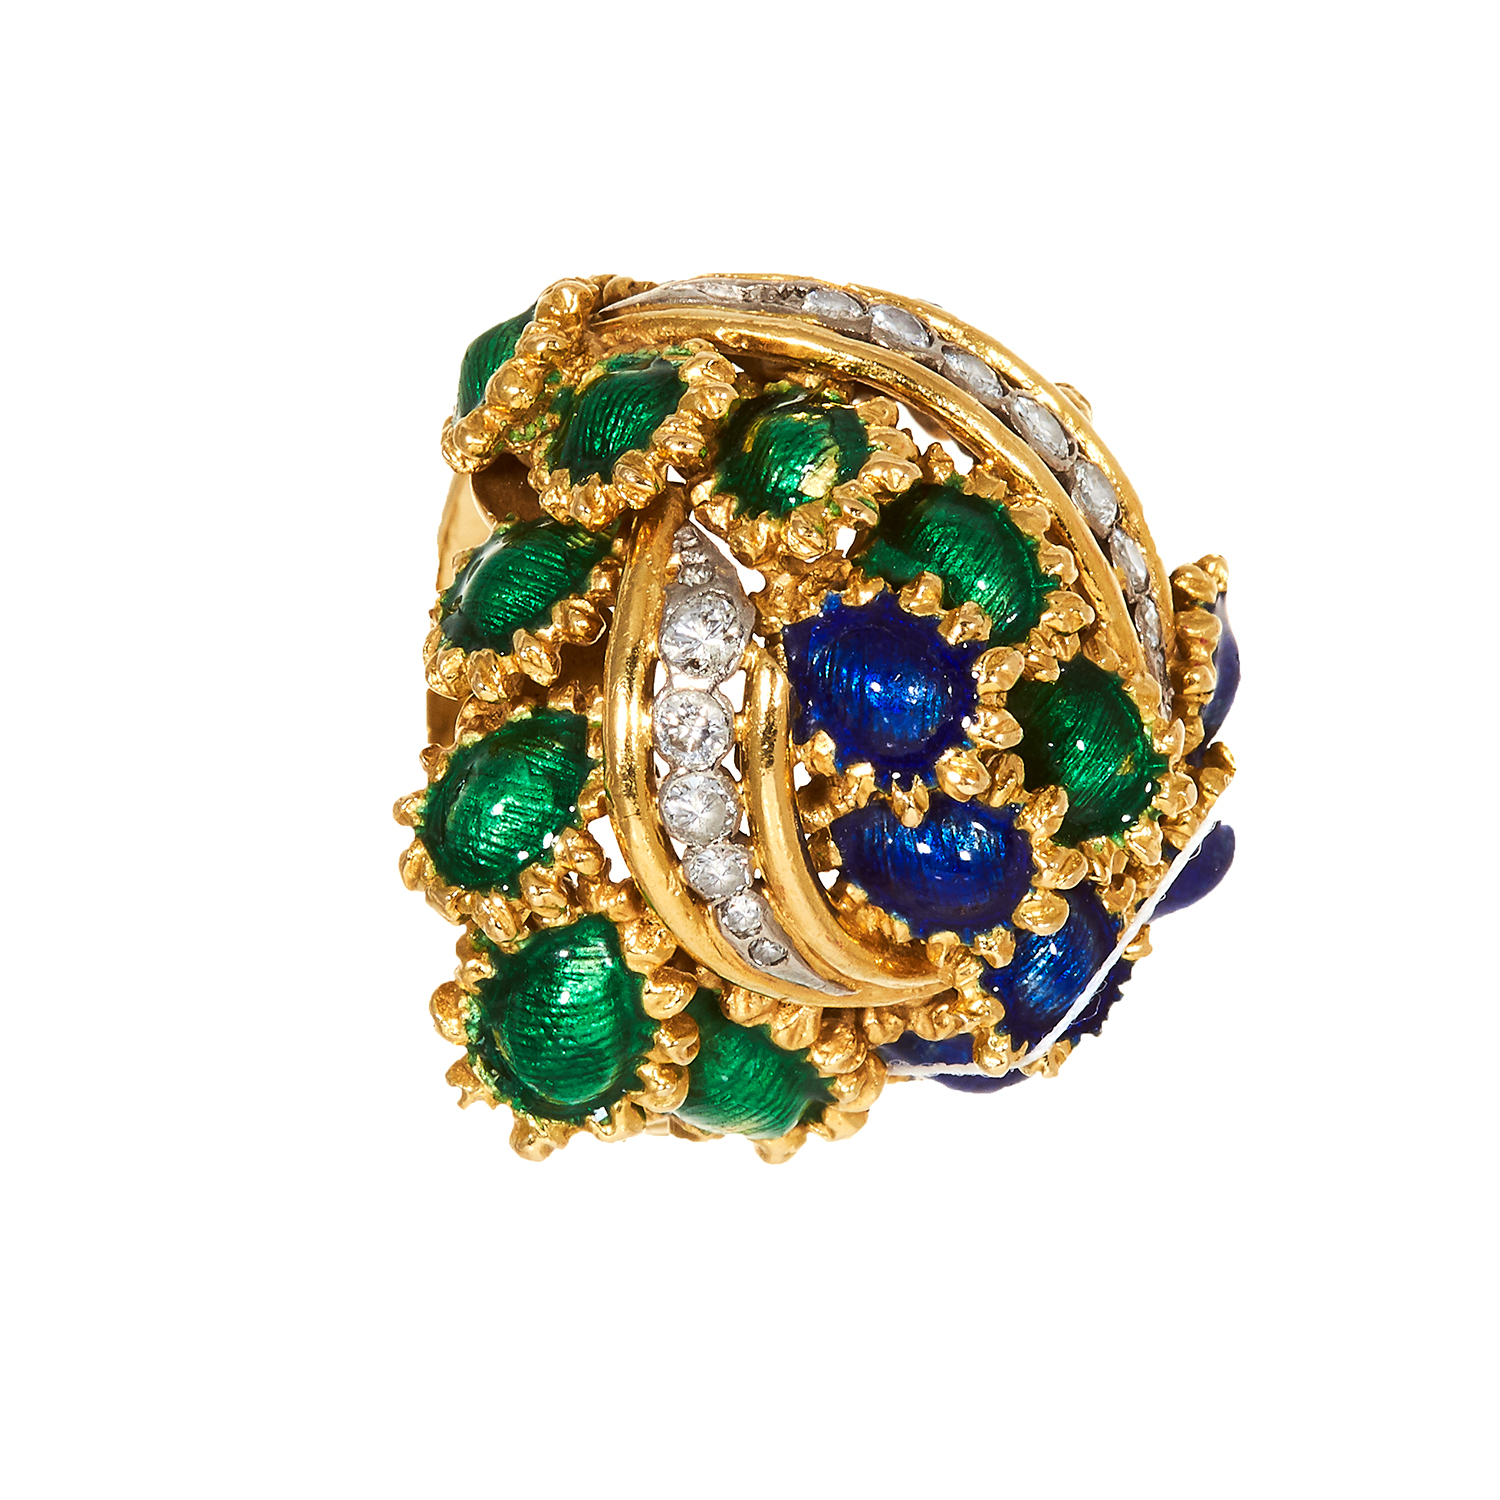 Los 60 - A DIAMOND AND ENAMEL BOMBE RING, KUTCHINSKY, CIRCA 1969 in 18ct yellow gold, jewelled with curved